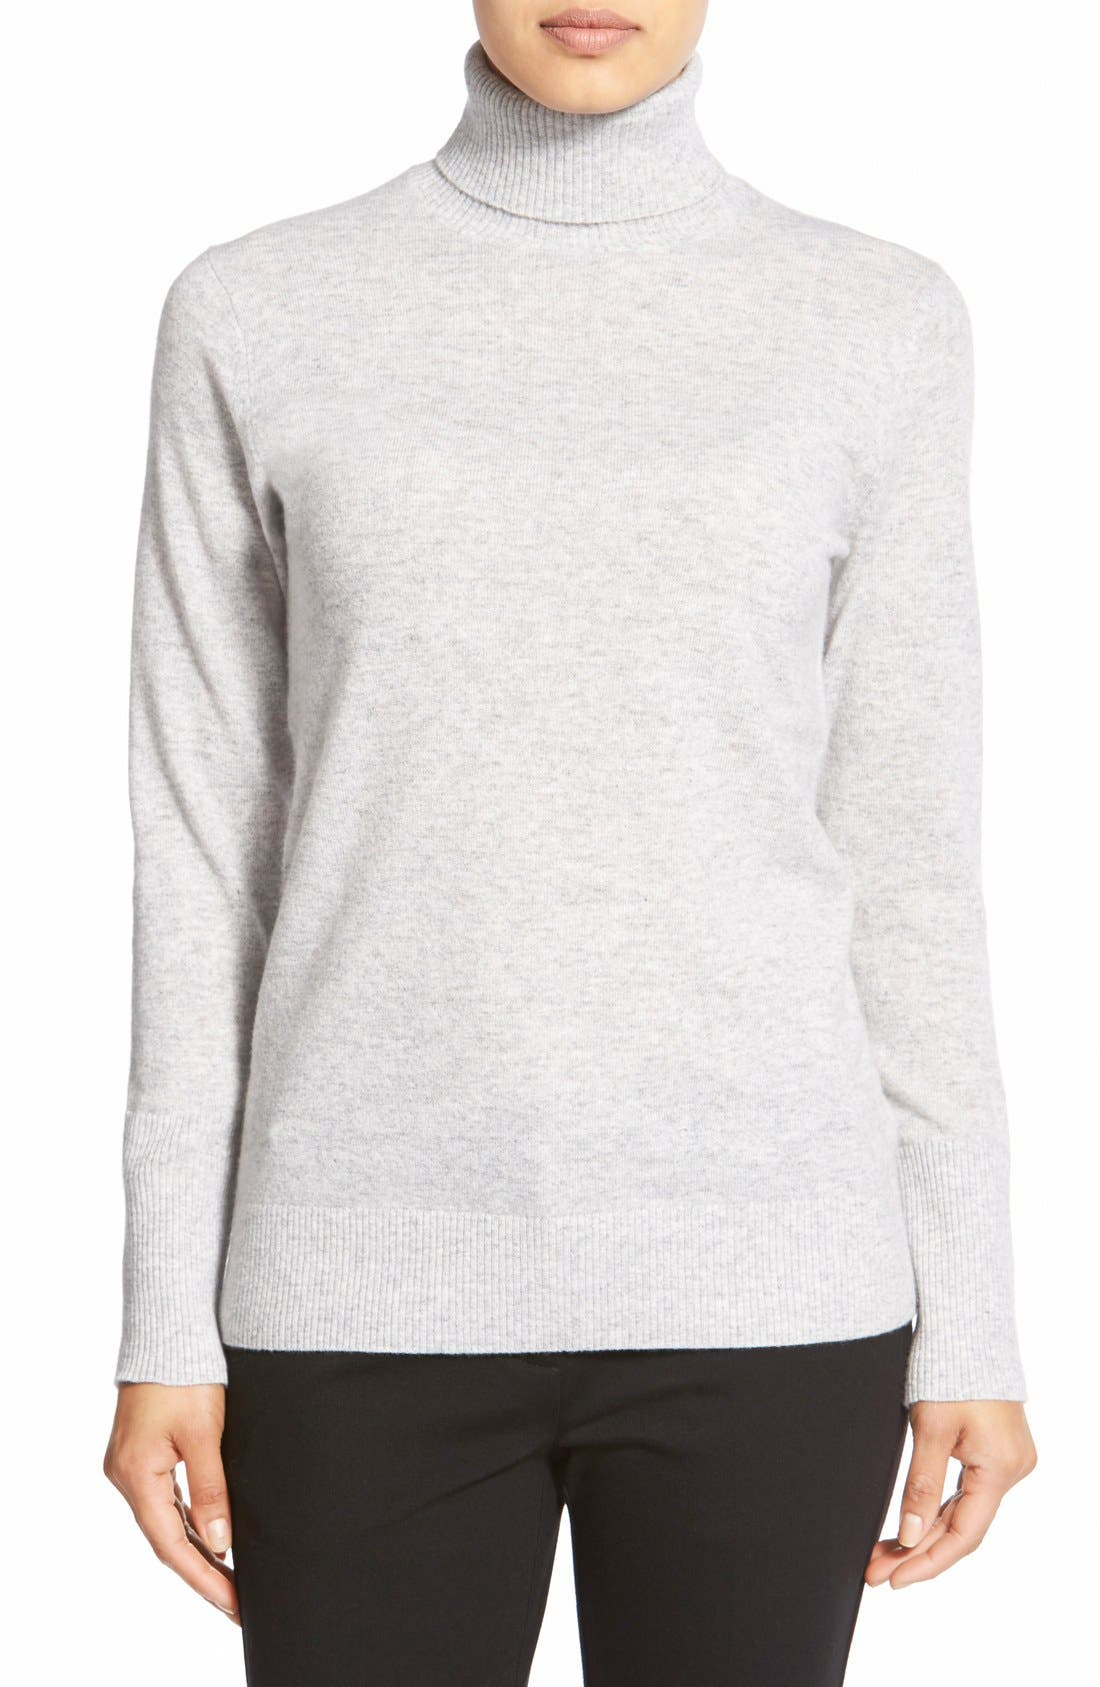 Alternate Image 1 Selected - Nordstrom Collection Cashmere Turtleneck Sweater